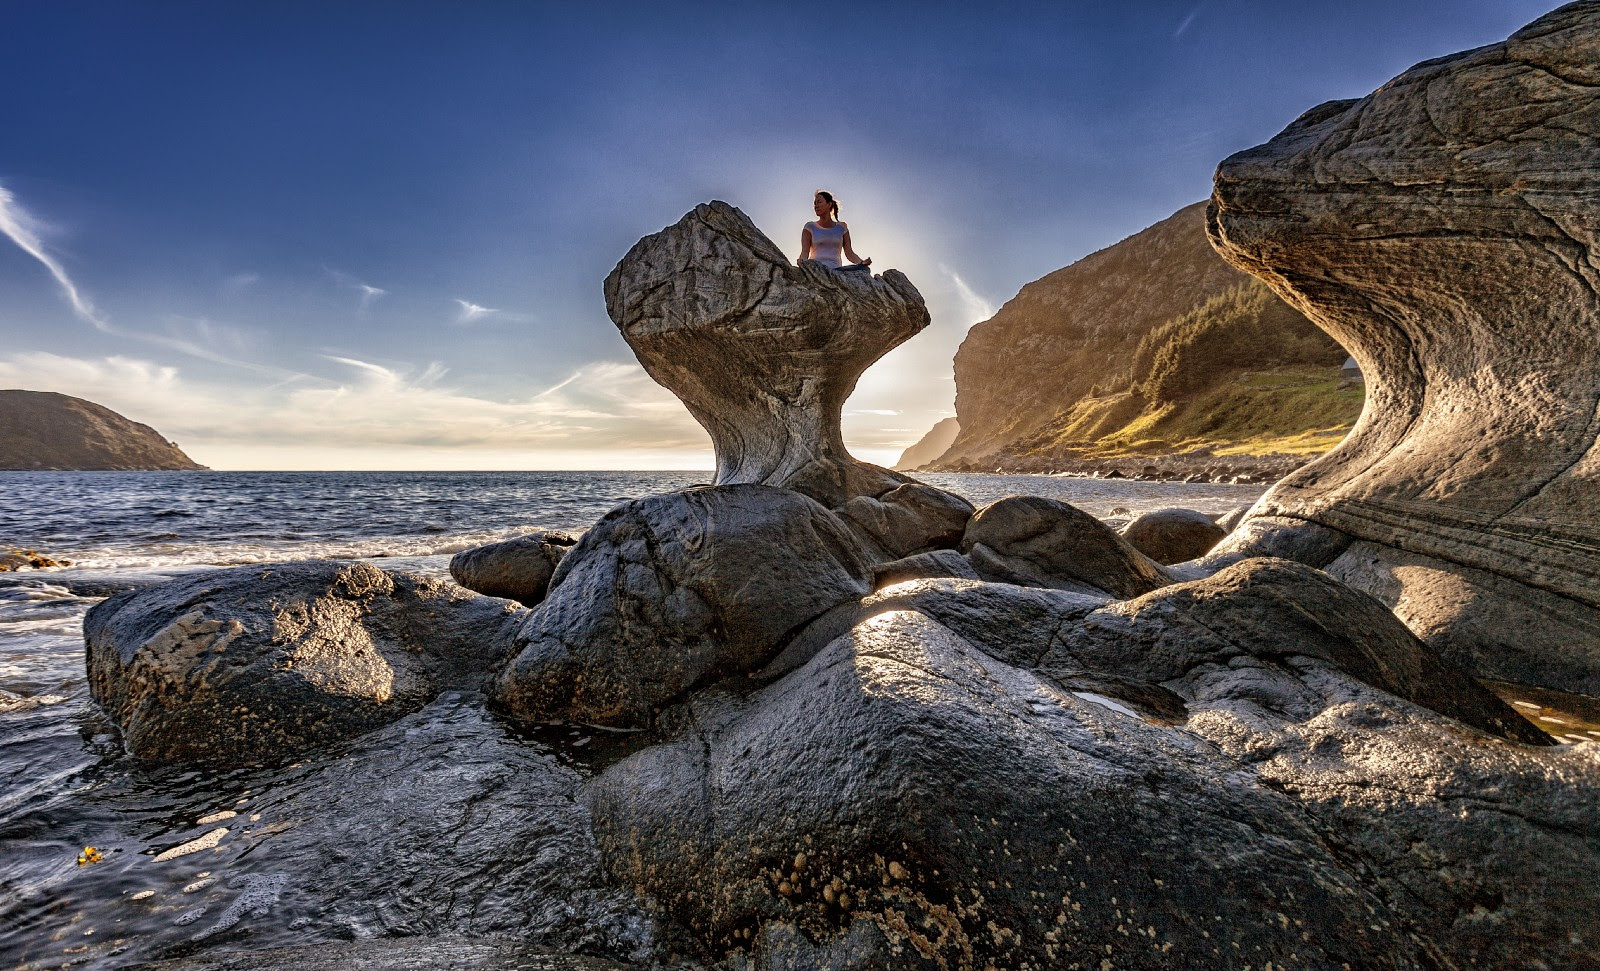 Woman sitting on a rock looking out a beautiful ocean waves and landscapes